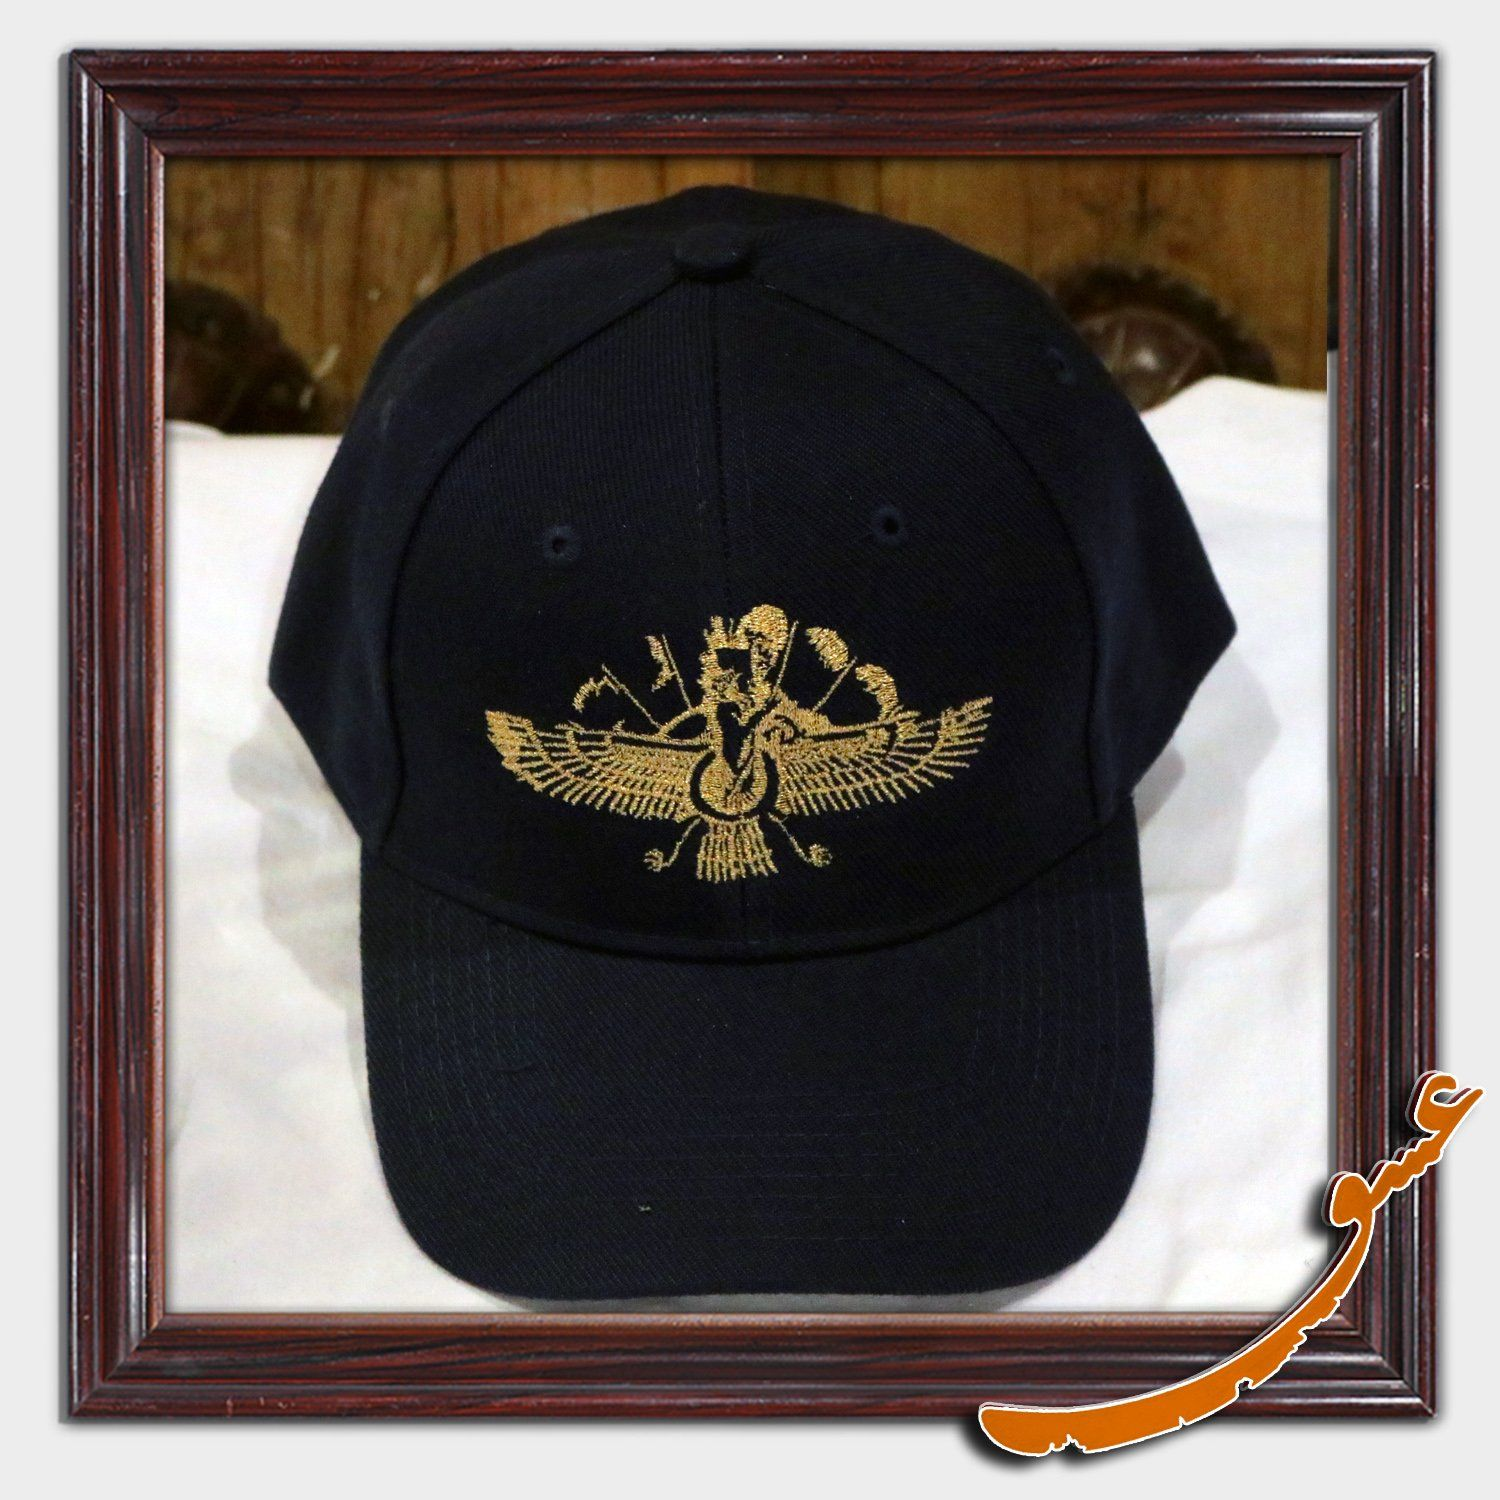 1af7fb7d1 Sport Hat With an Embroidery of Faravahar Symbol | Products | Hats ...